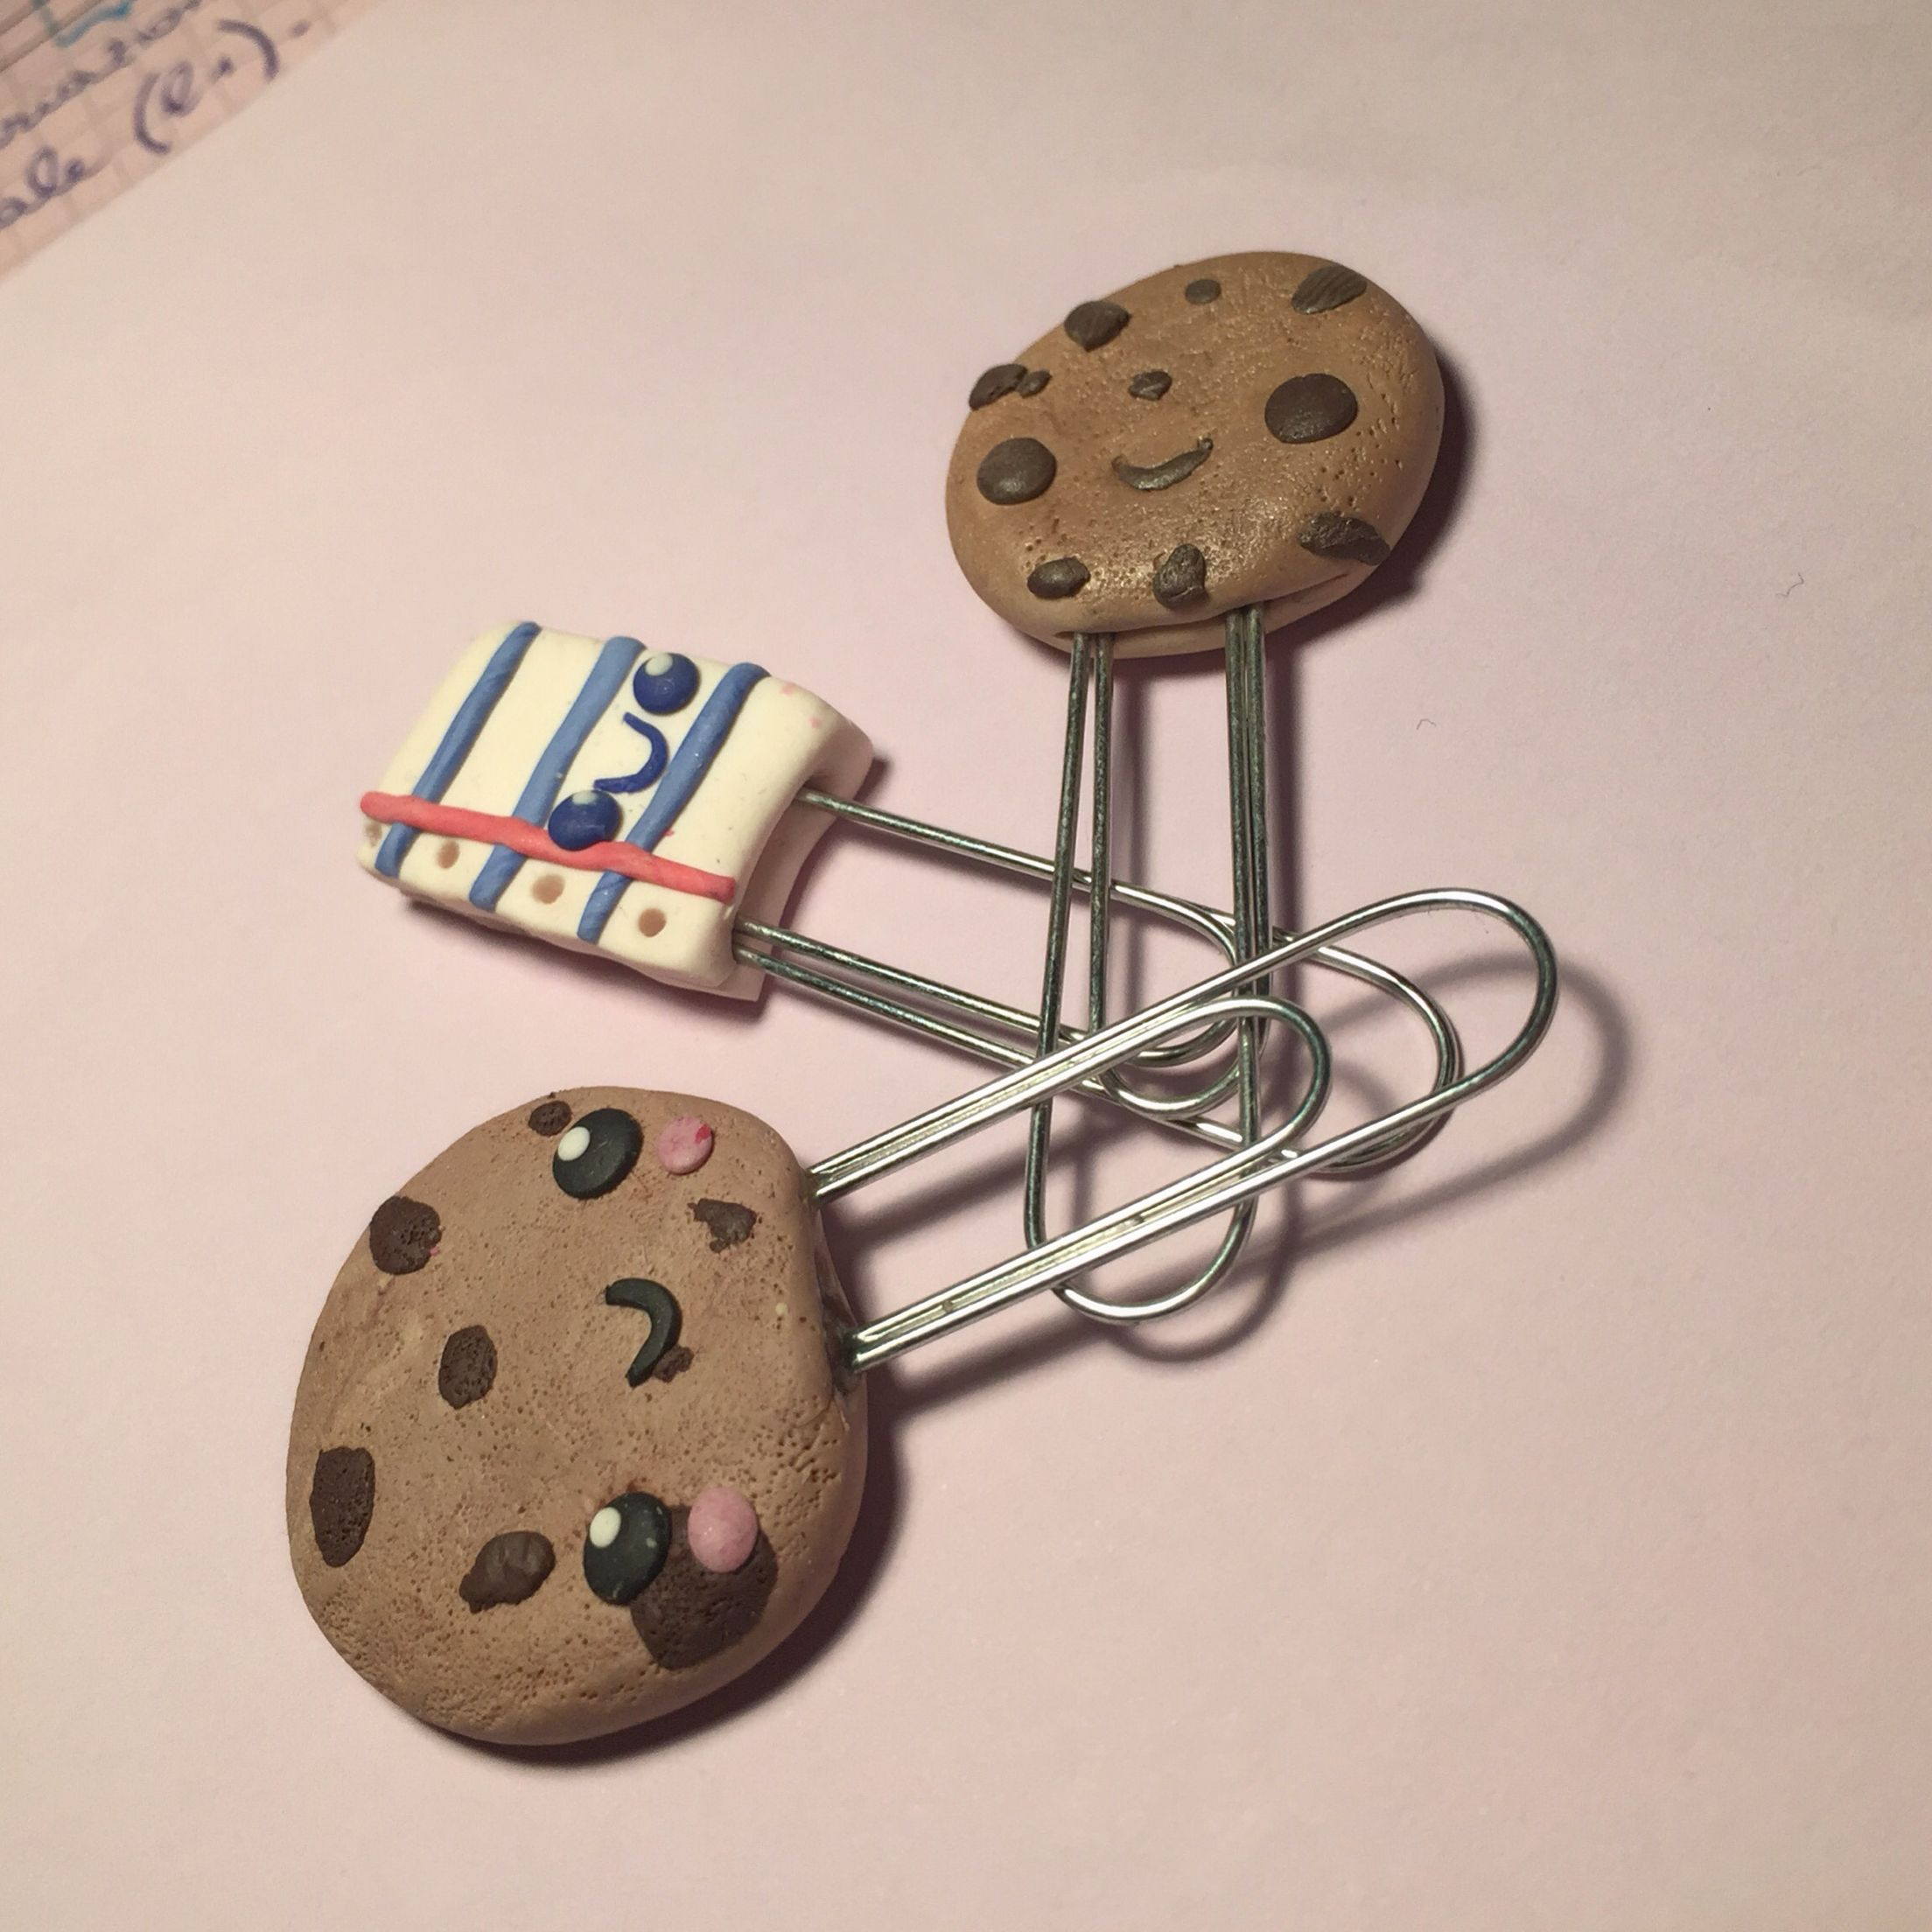 ✏️ back to school fimo clay ideas! Cookies and notebook